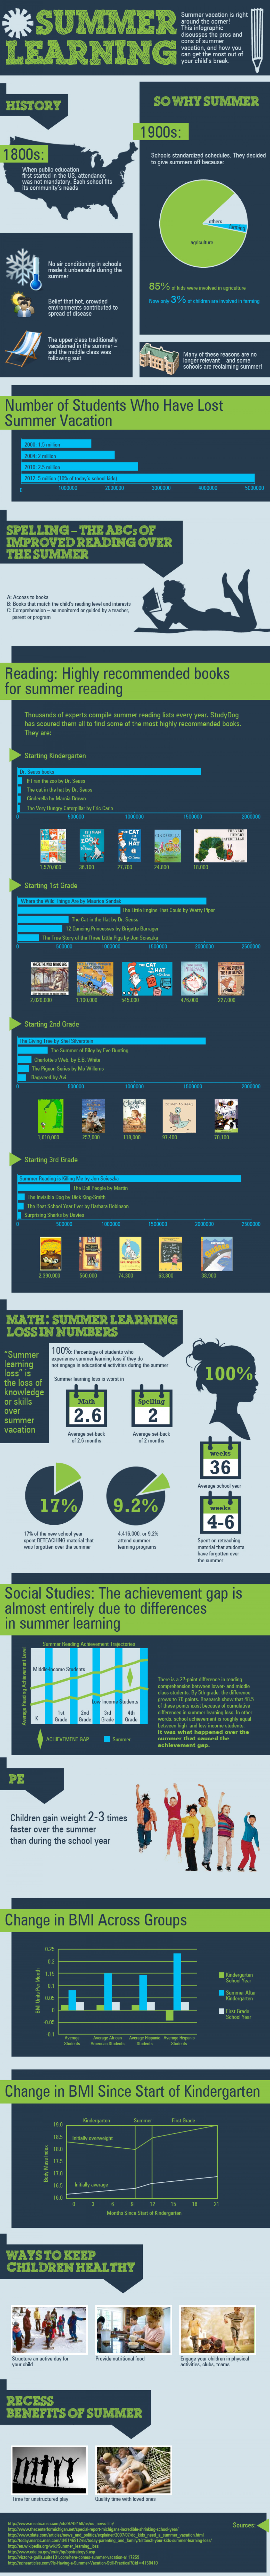 Summer Learning Infographic